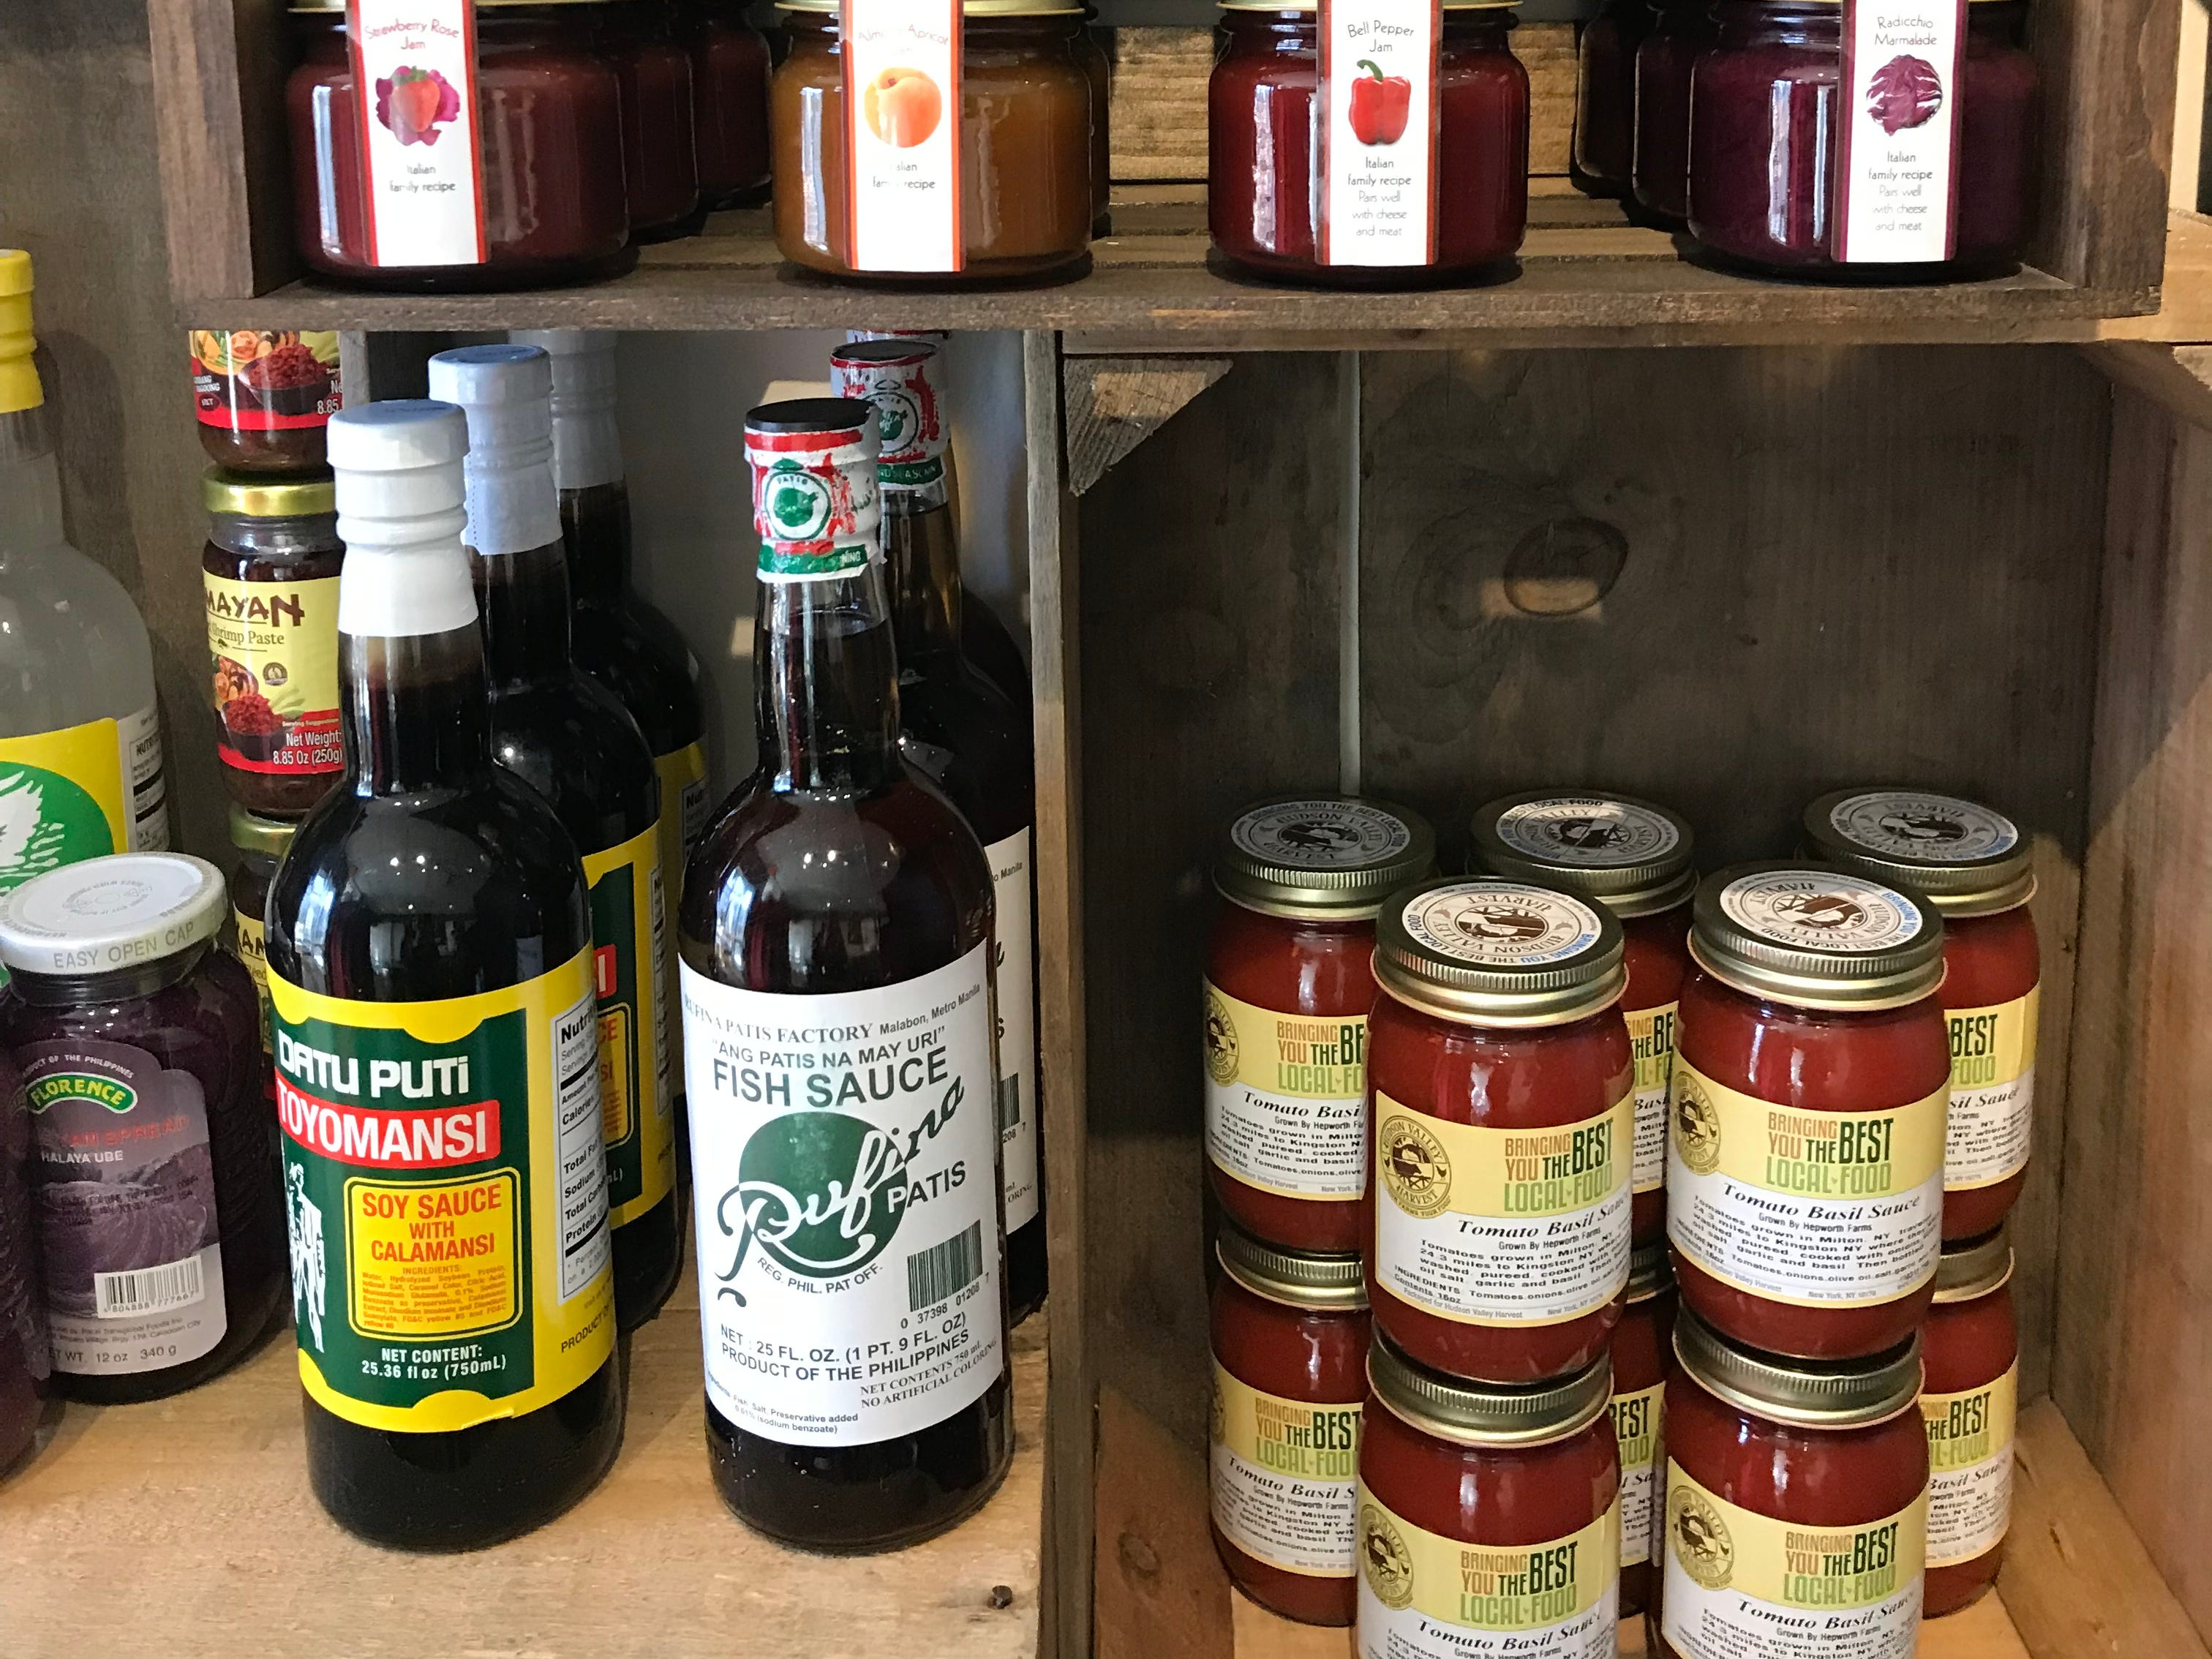 Some of the provisions at DPNB Pasta & Provisions in Nyack. Photographed January 31,2019.